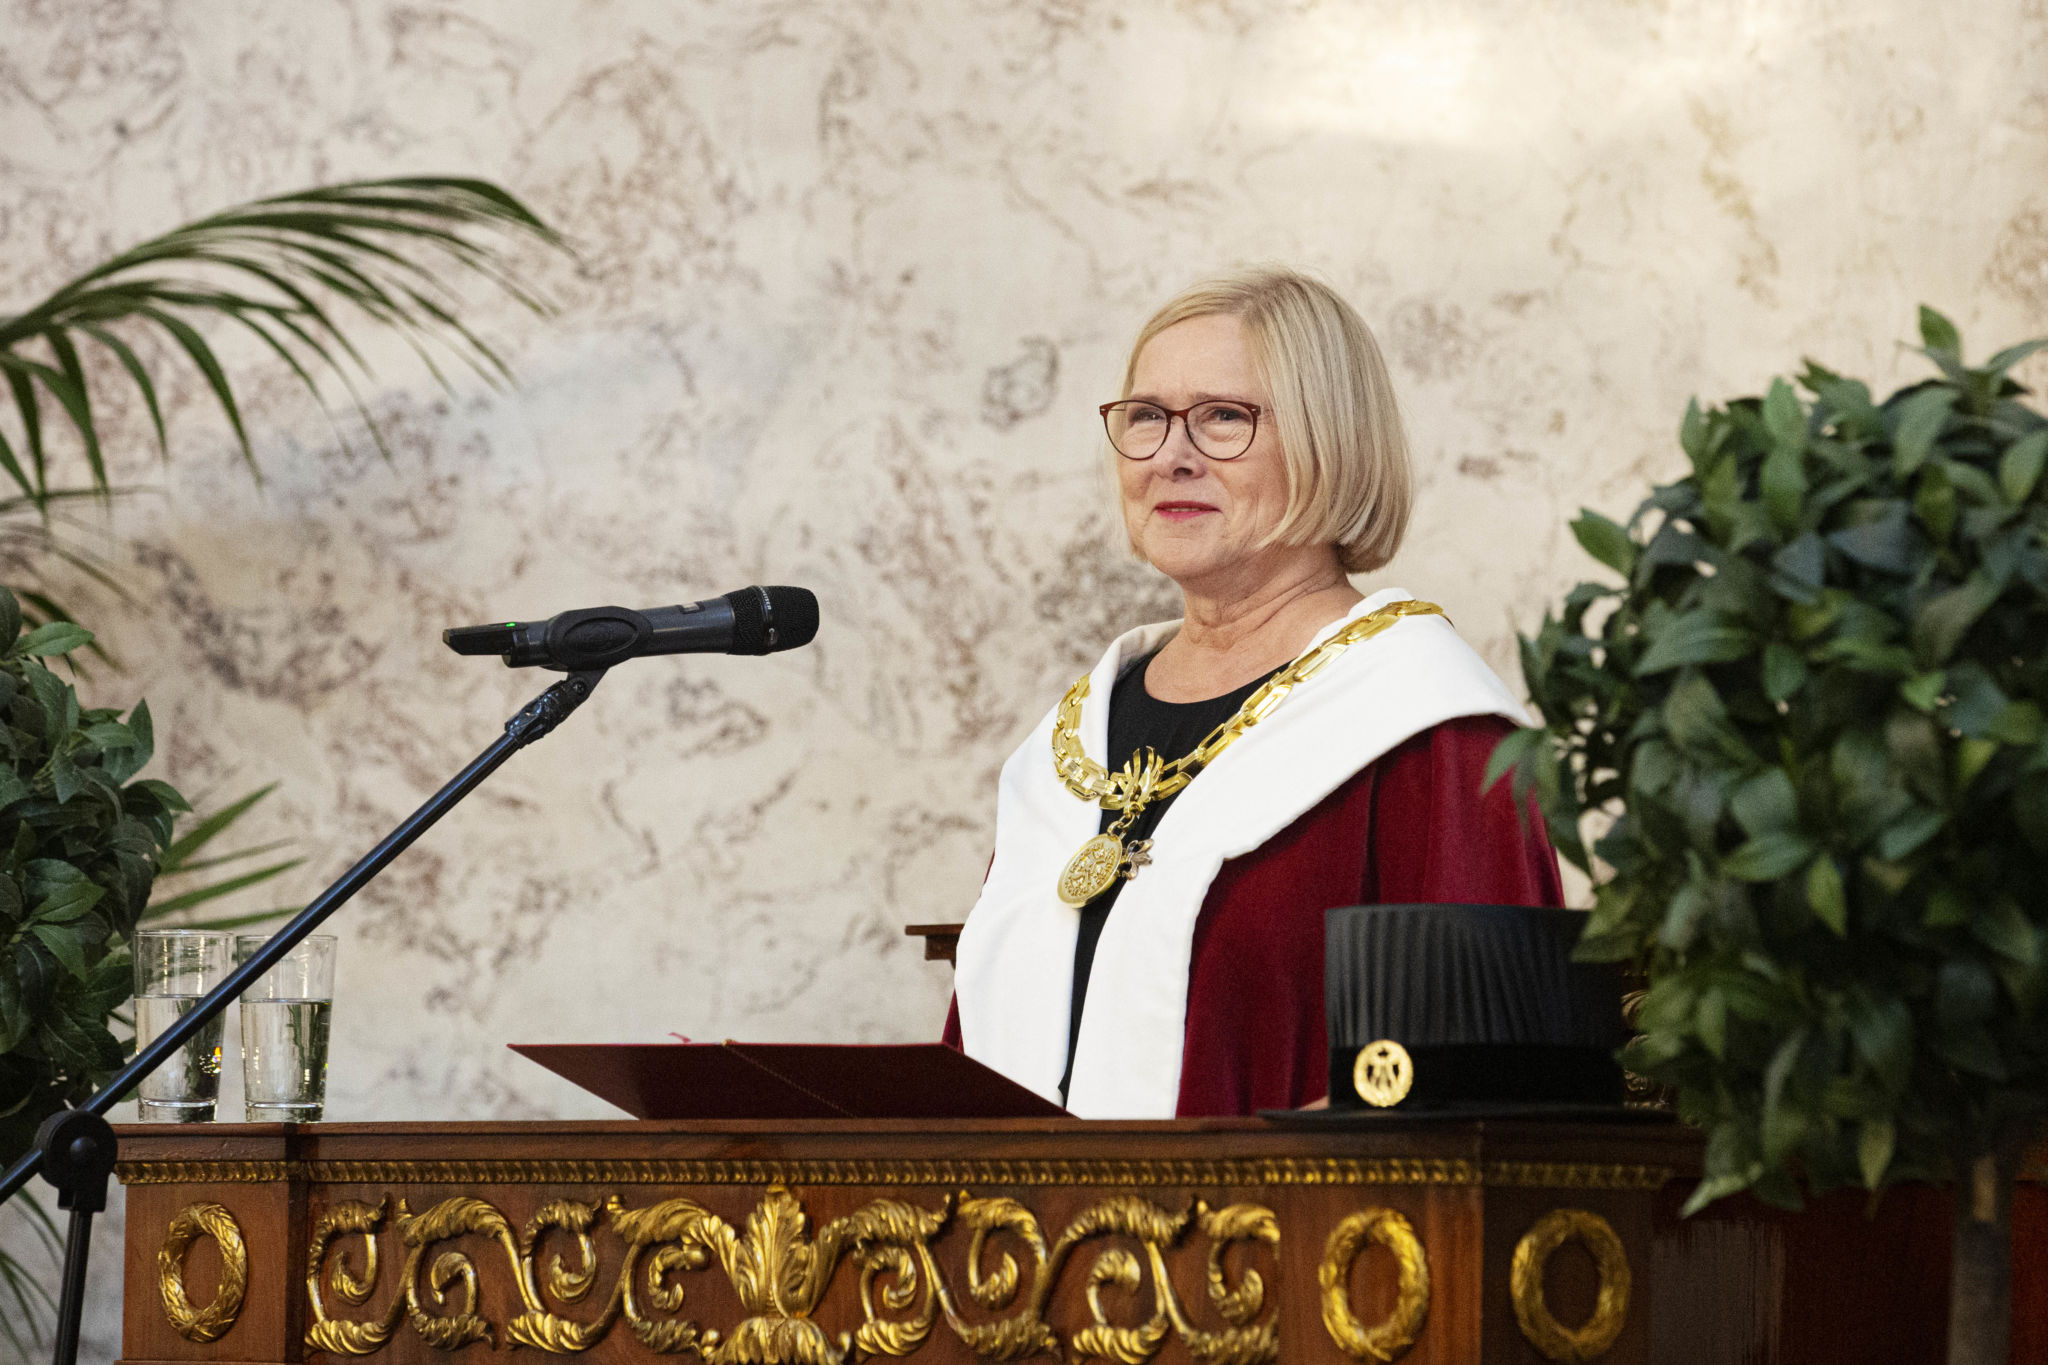 Rector Moira von Wright giving her inauguration address.